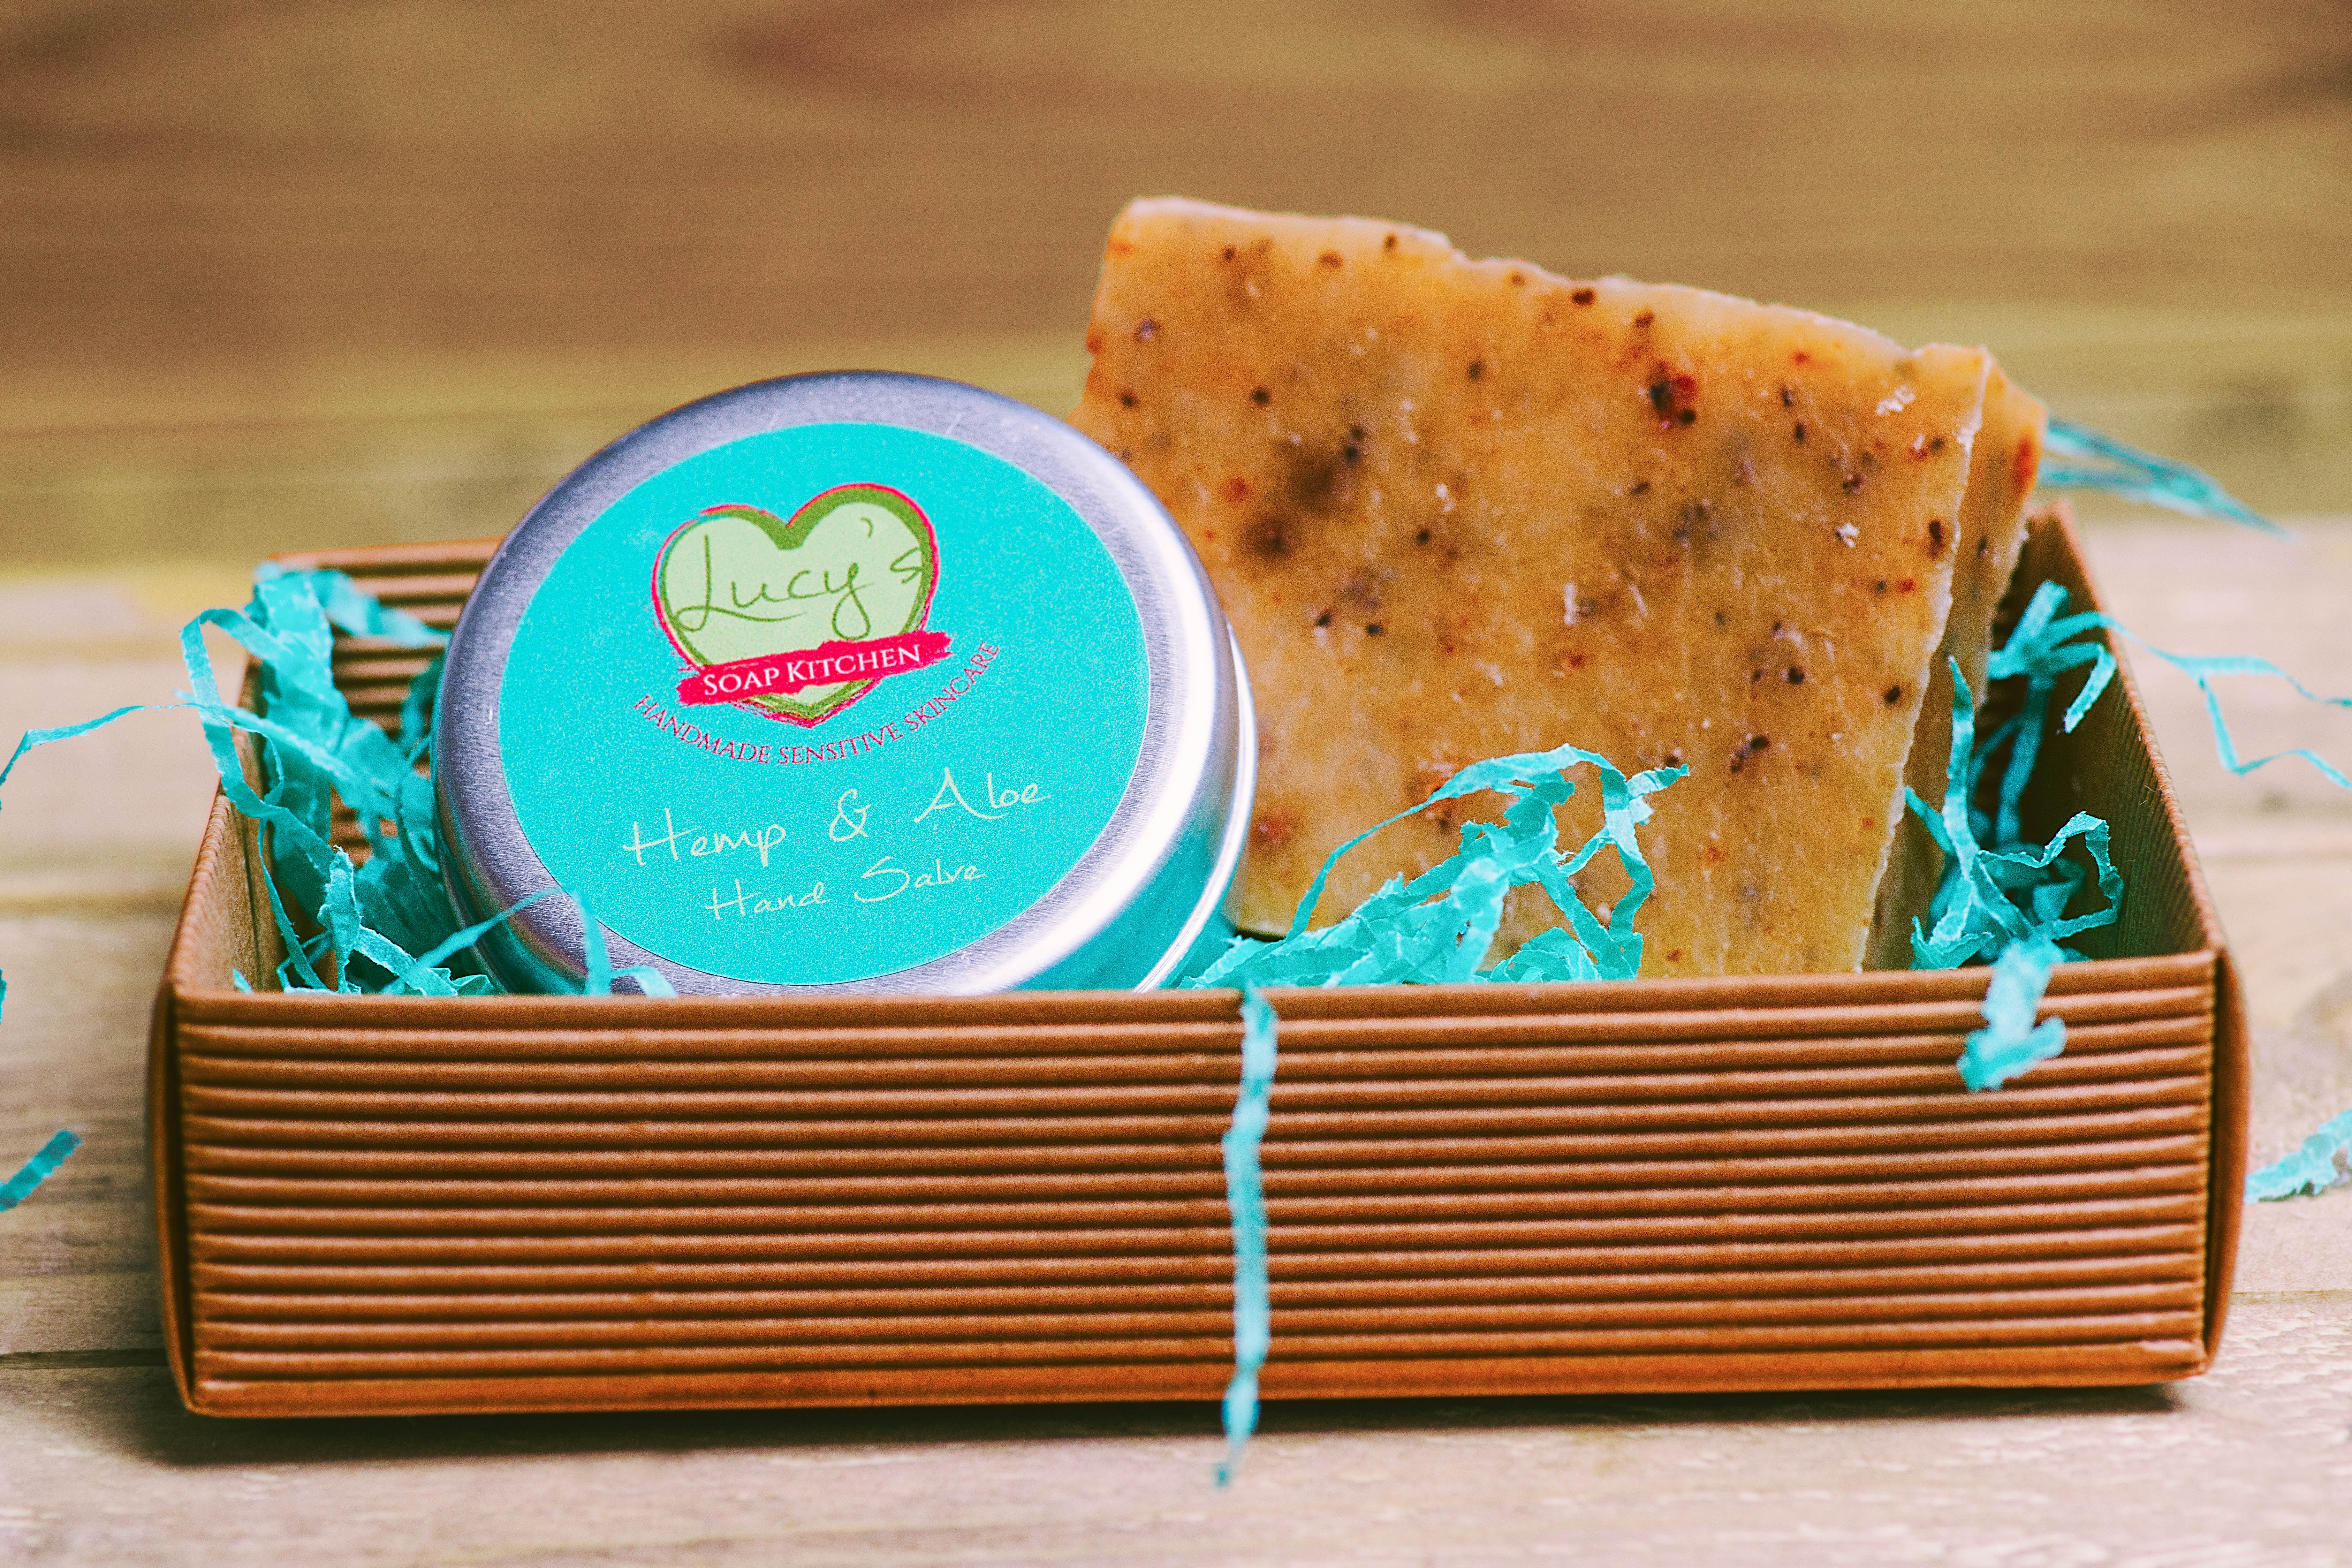 Lucy\'s Soap Kitchen - Inside Craft